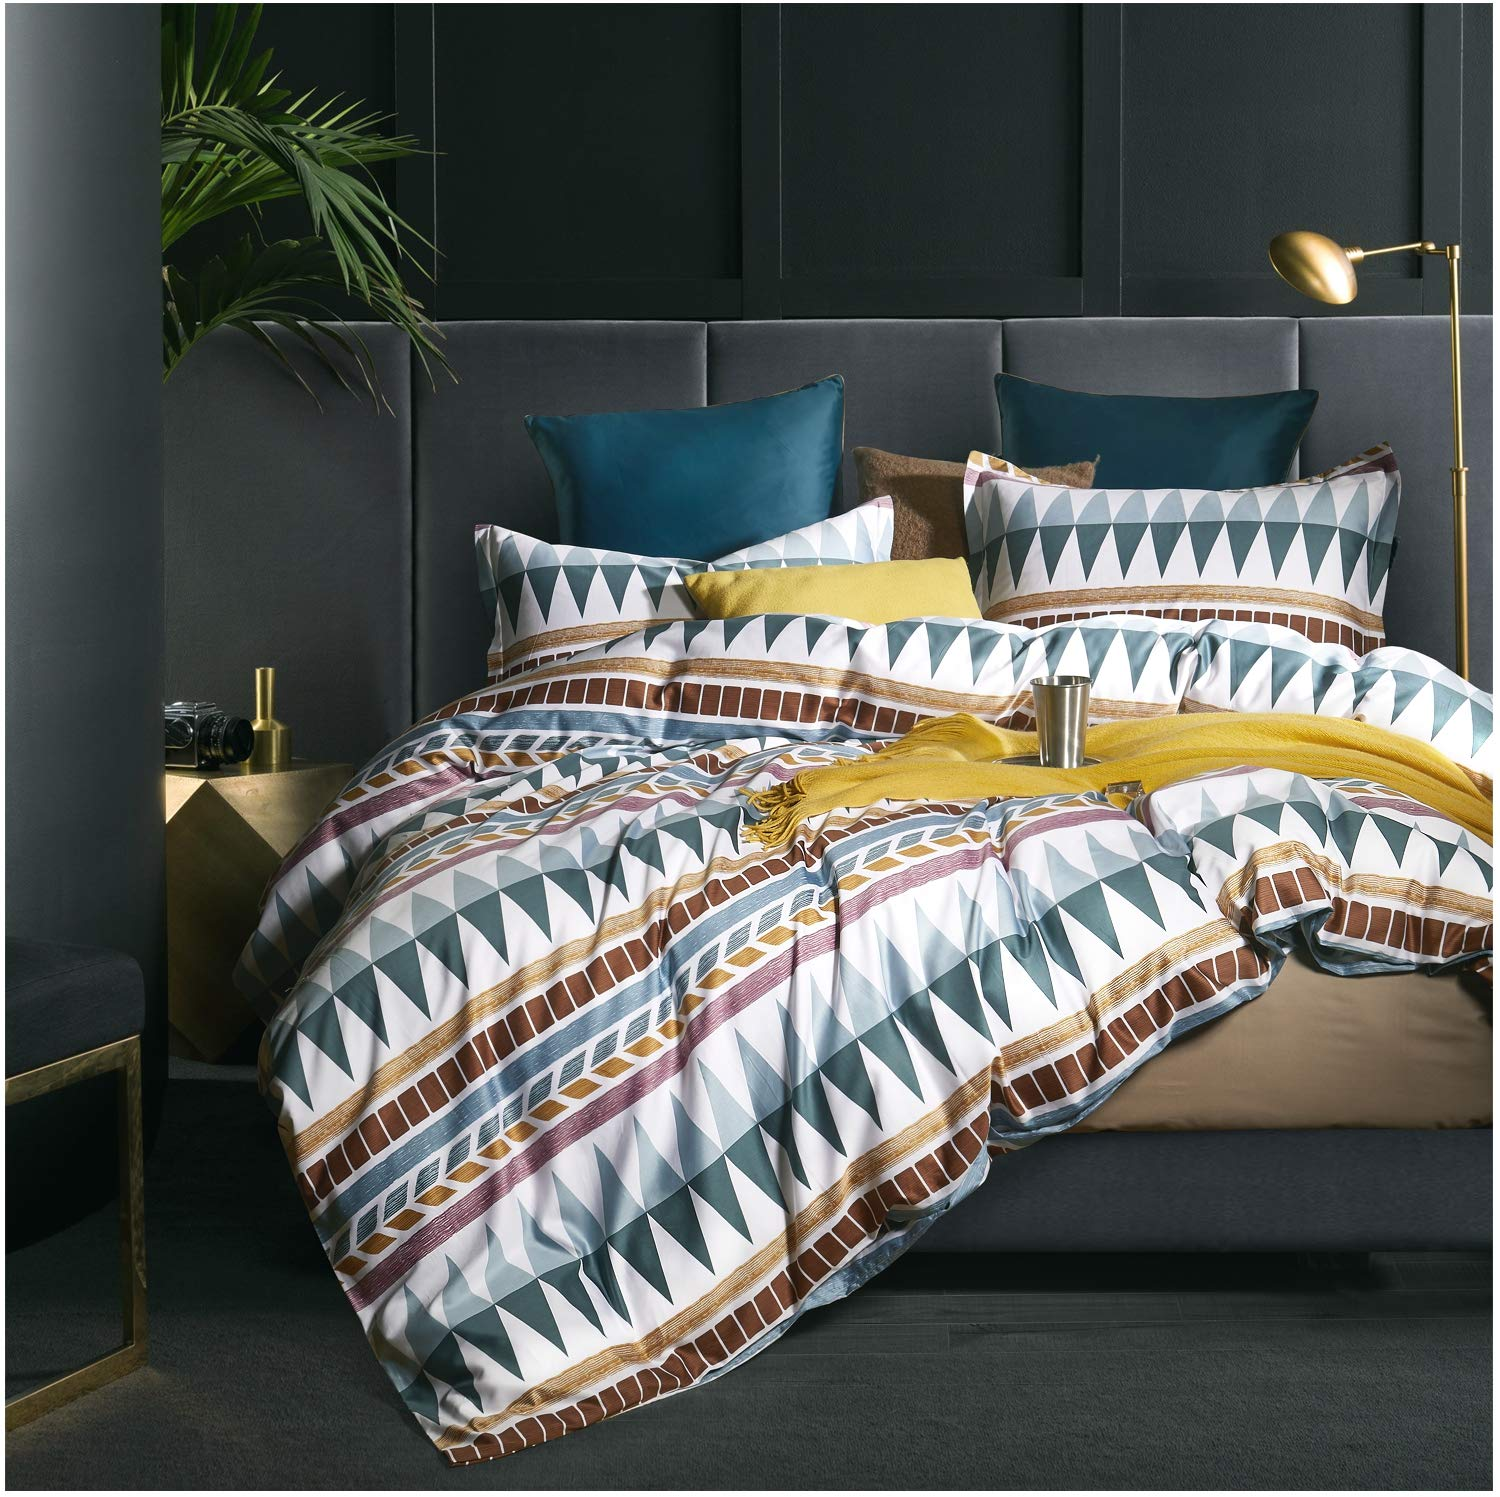 Bohemian Duvet Cover Striped Ethnic Boho Reversible Southwestern 400TC Cotton Bedding 3pc Set Navy White Orange Modern Geo Aztec Print (Queen, Teal Rust)